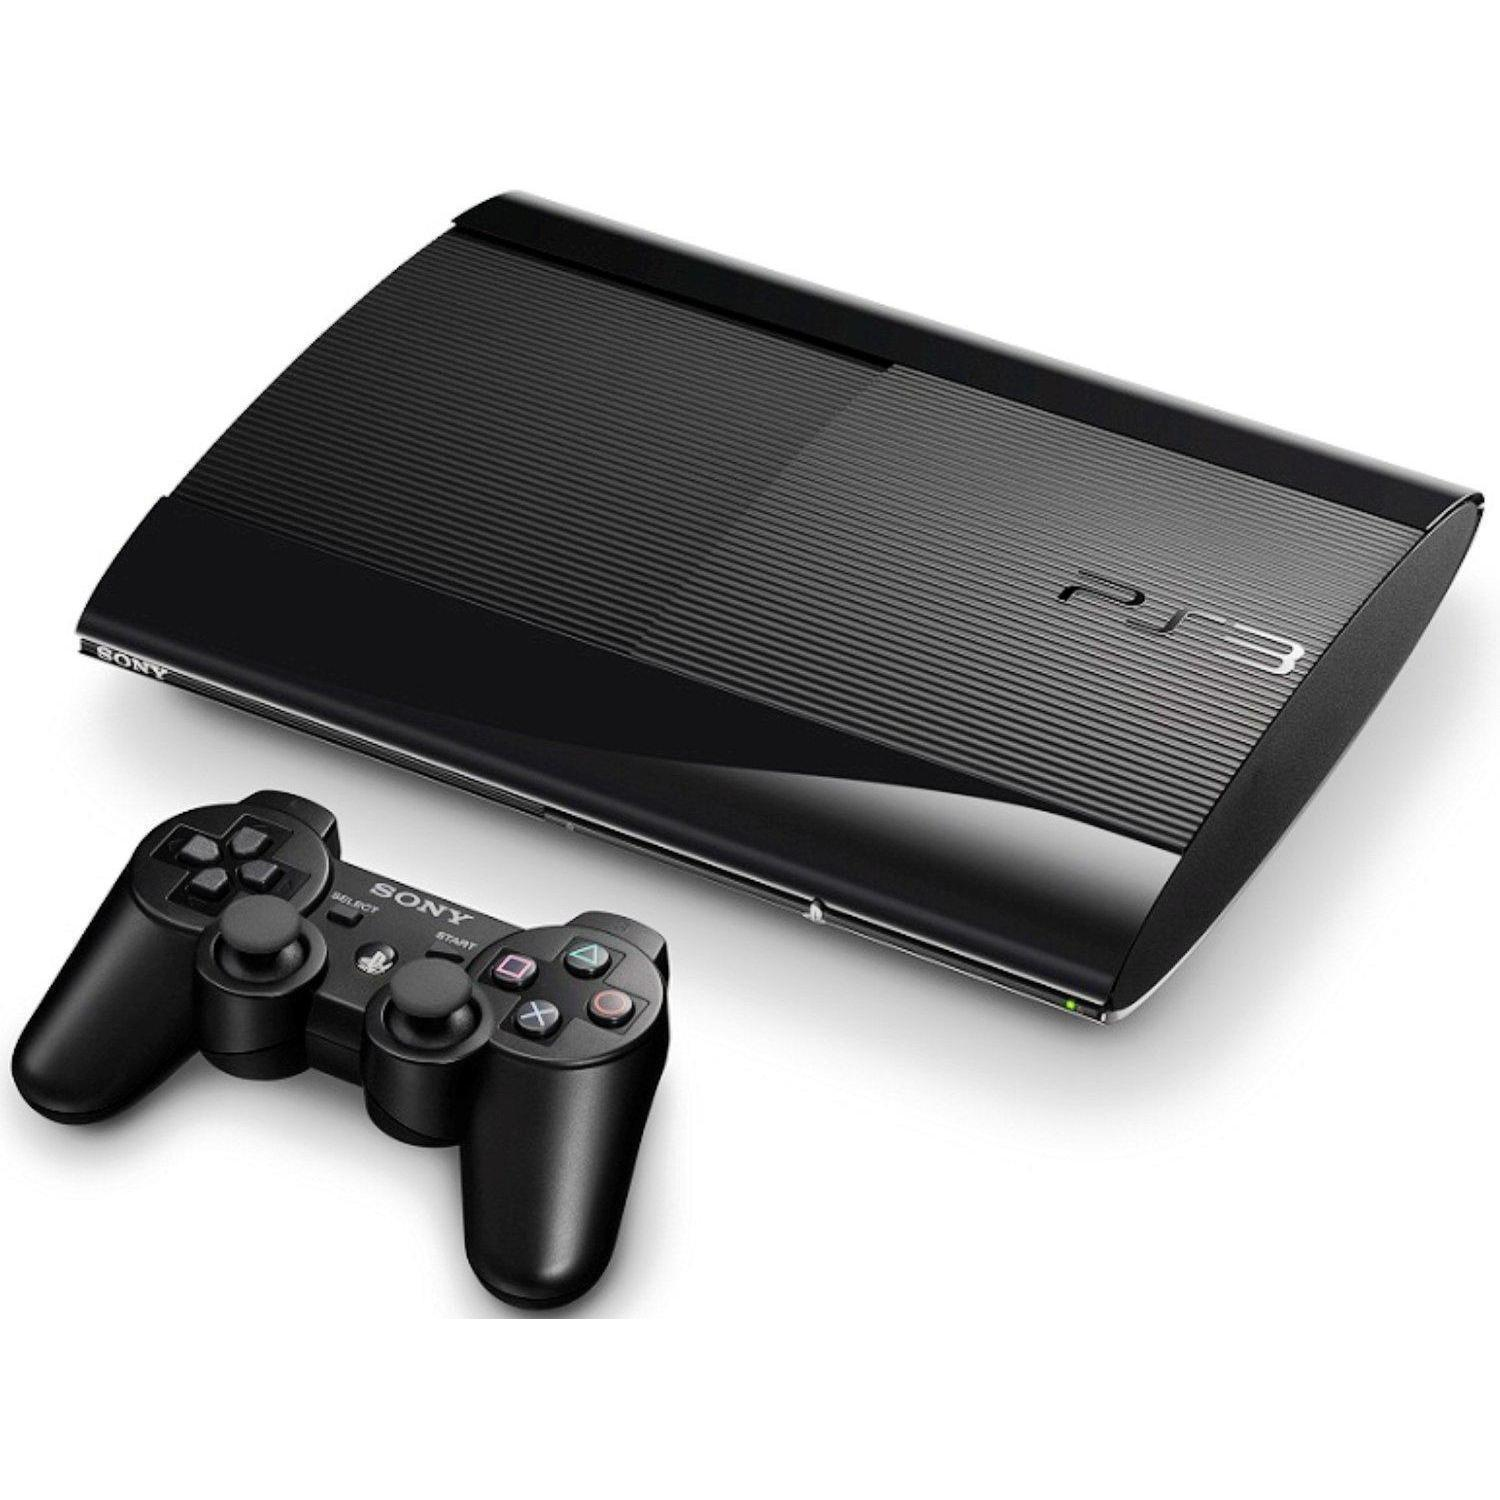 Sony Playstation 3 Ultra Slim 500 GB - Negro reacondicionado